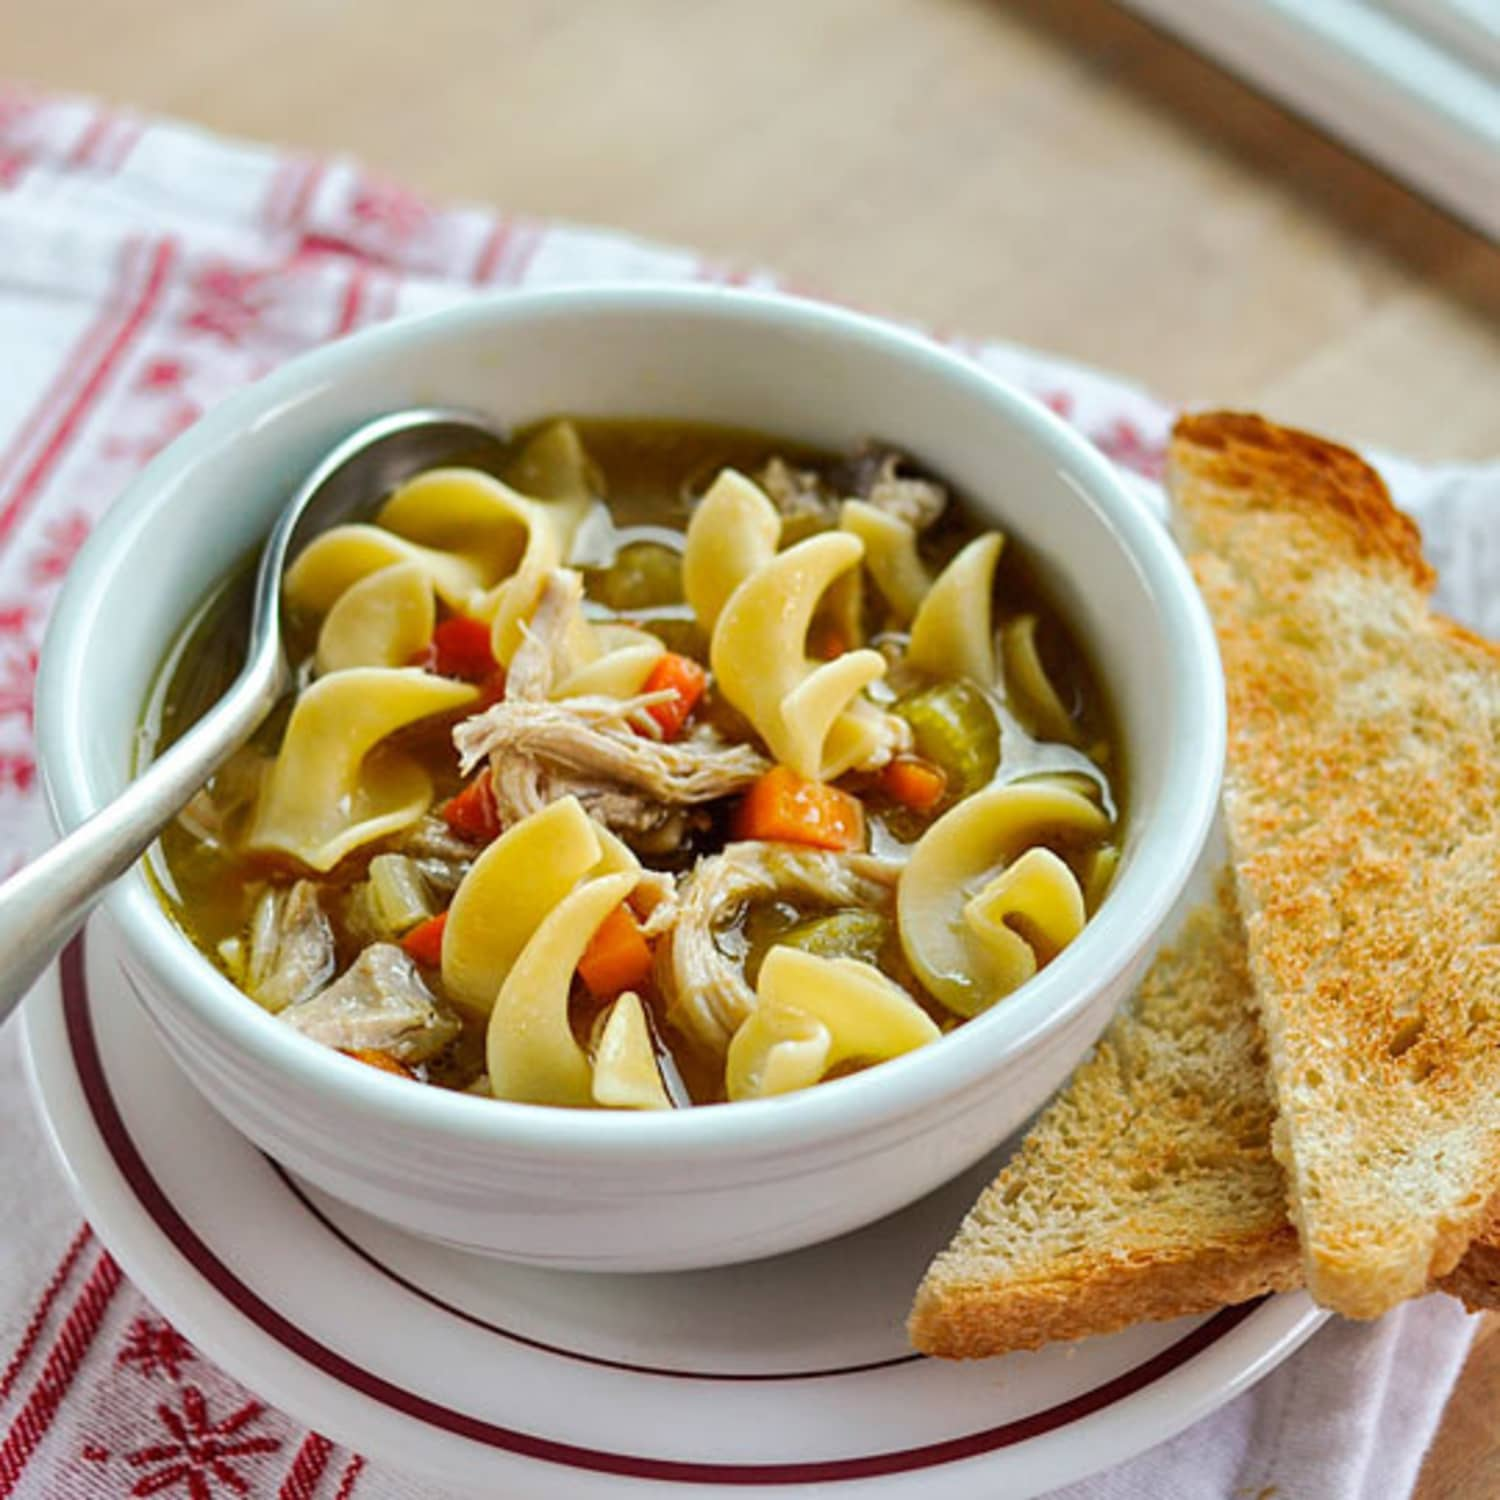 5 Mistakes to Avoid When Making Chicken Noodle Soup | Kitchn